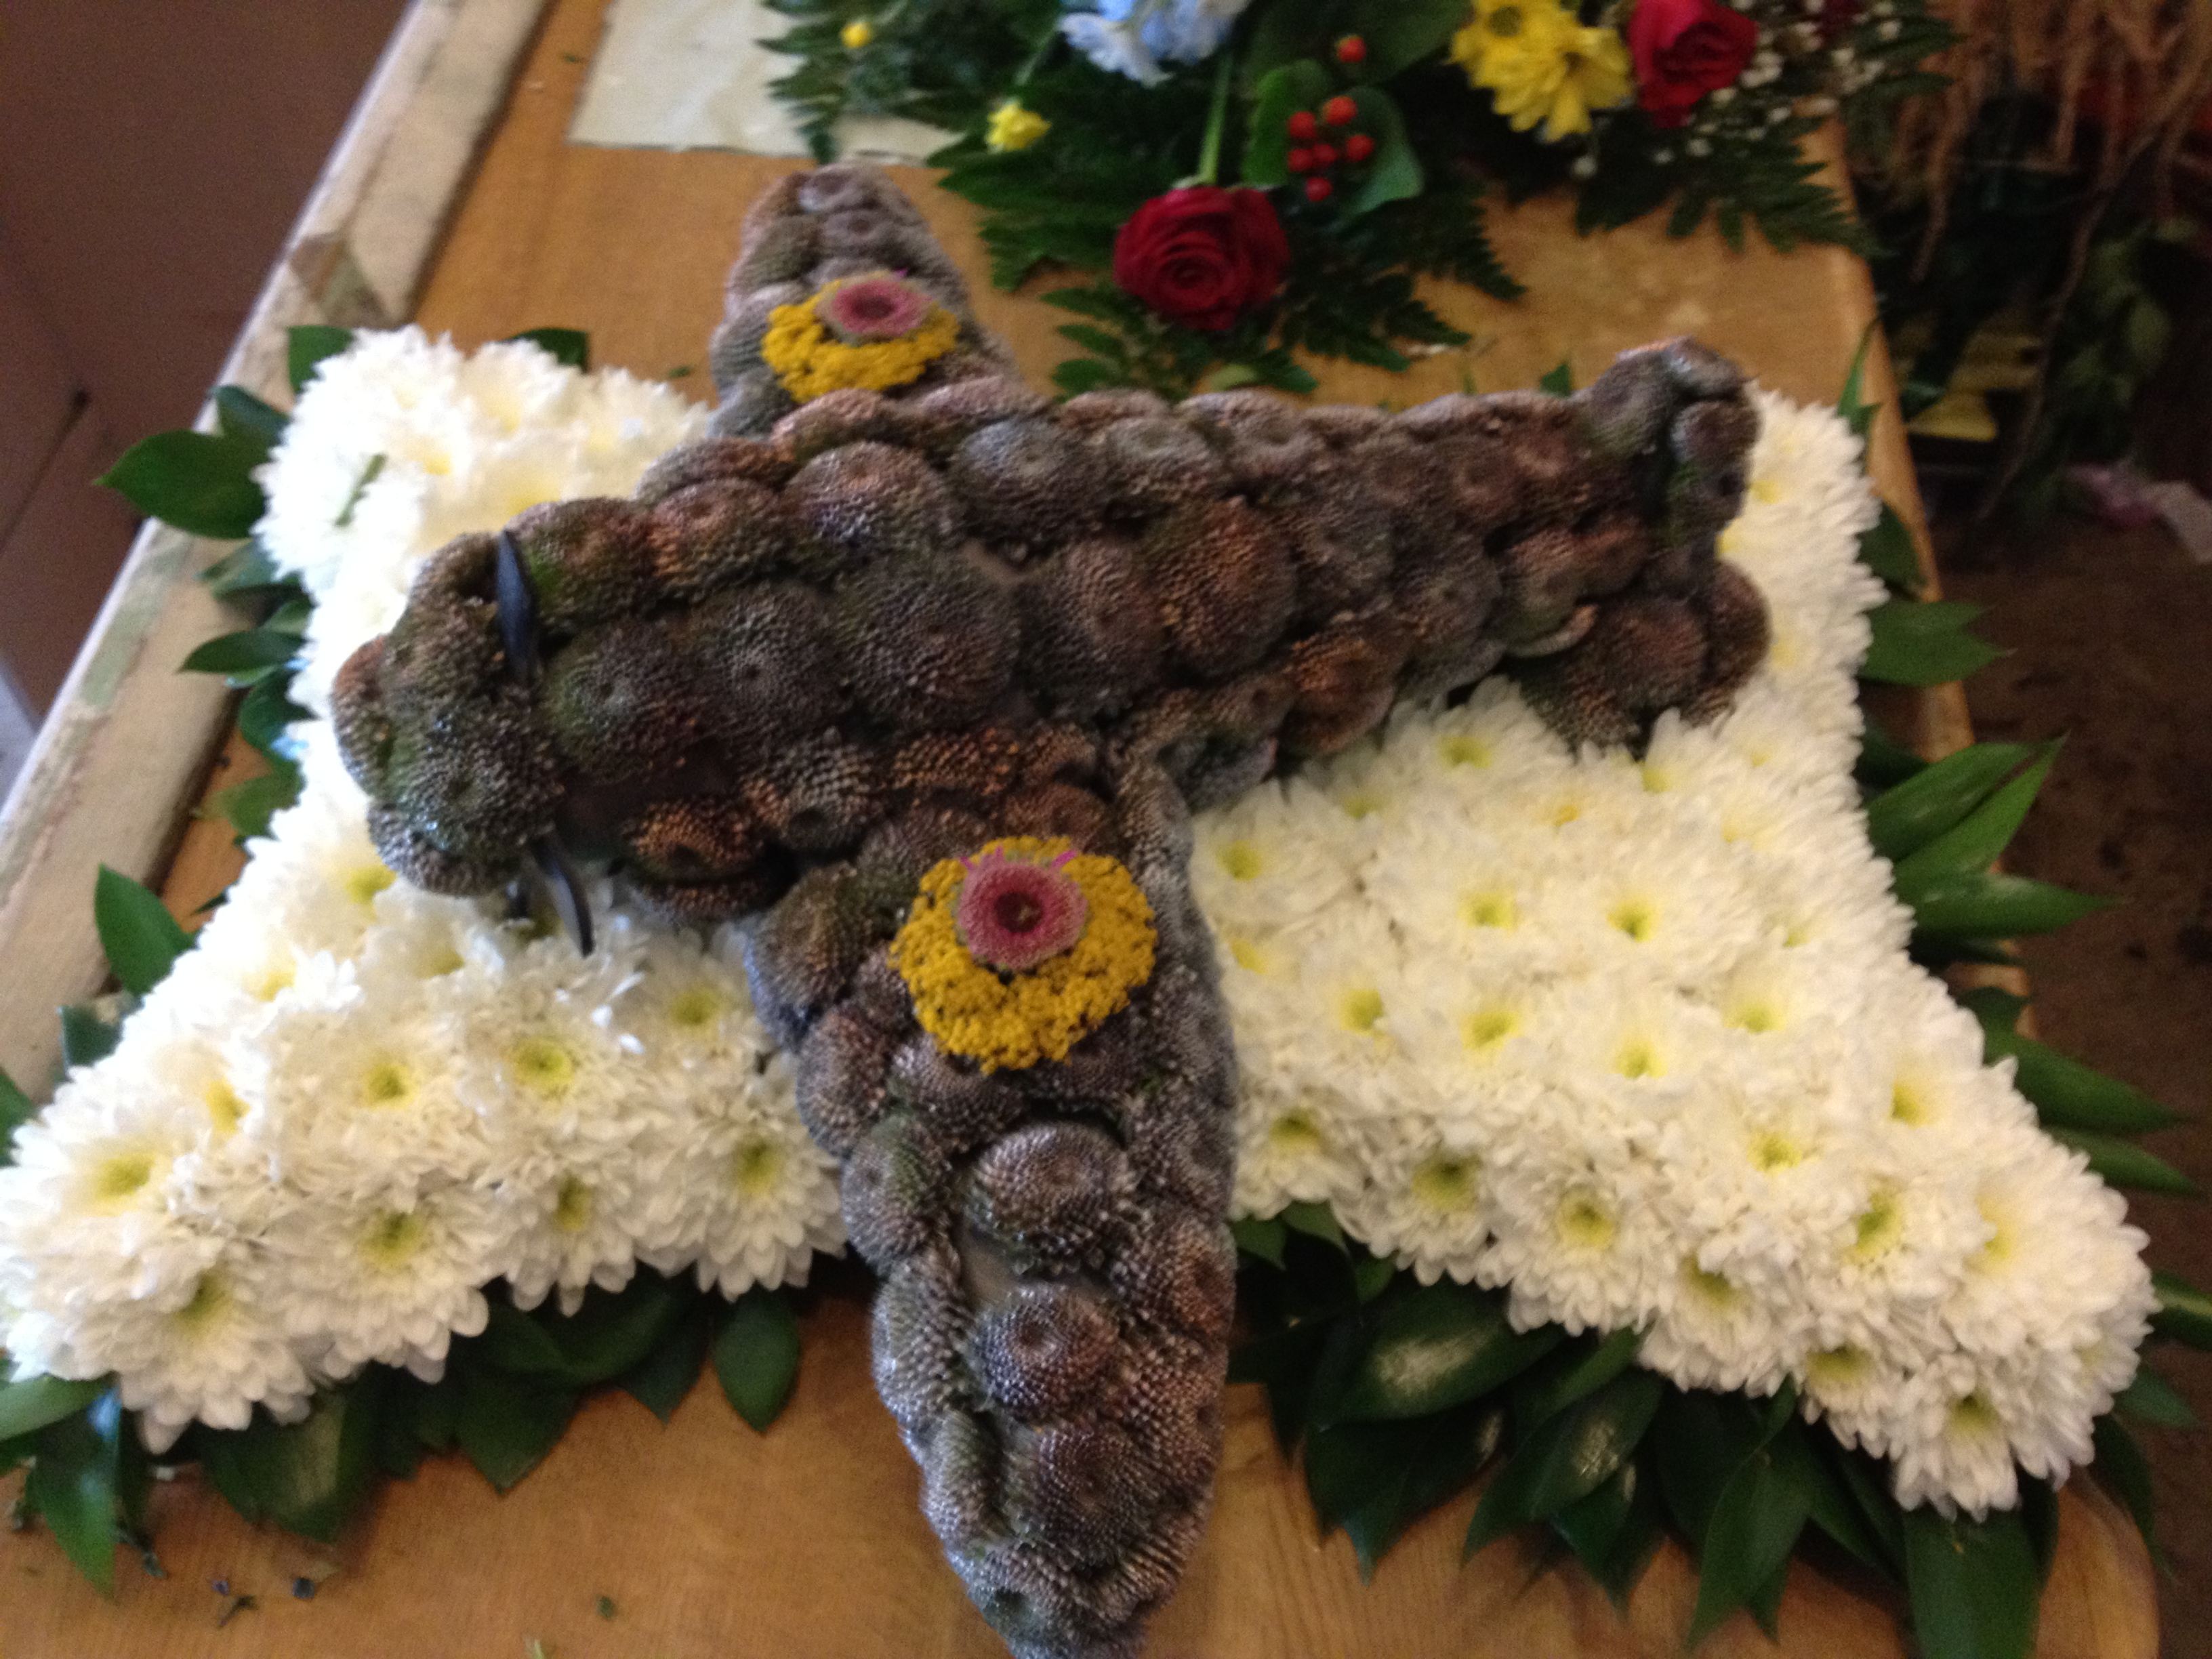 Special funeral tributes special funeral tributes izmirmasajfo Gallery